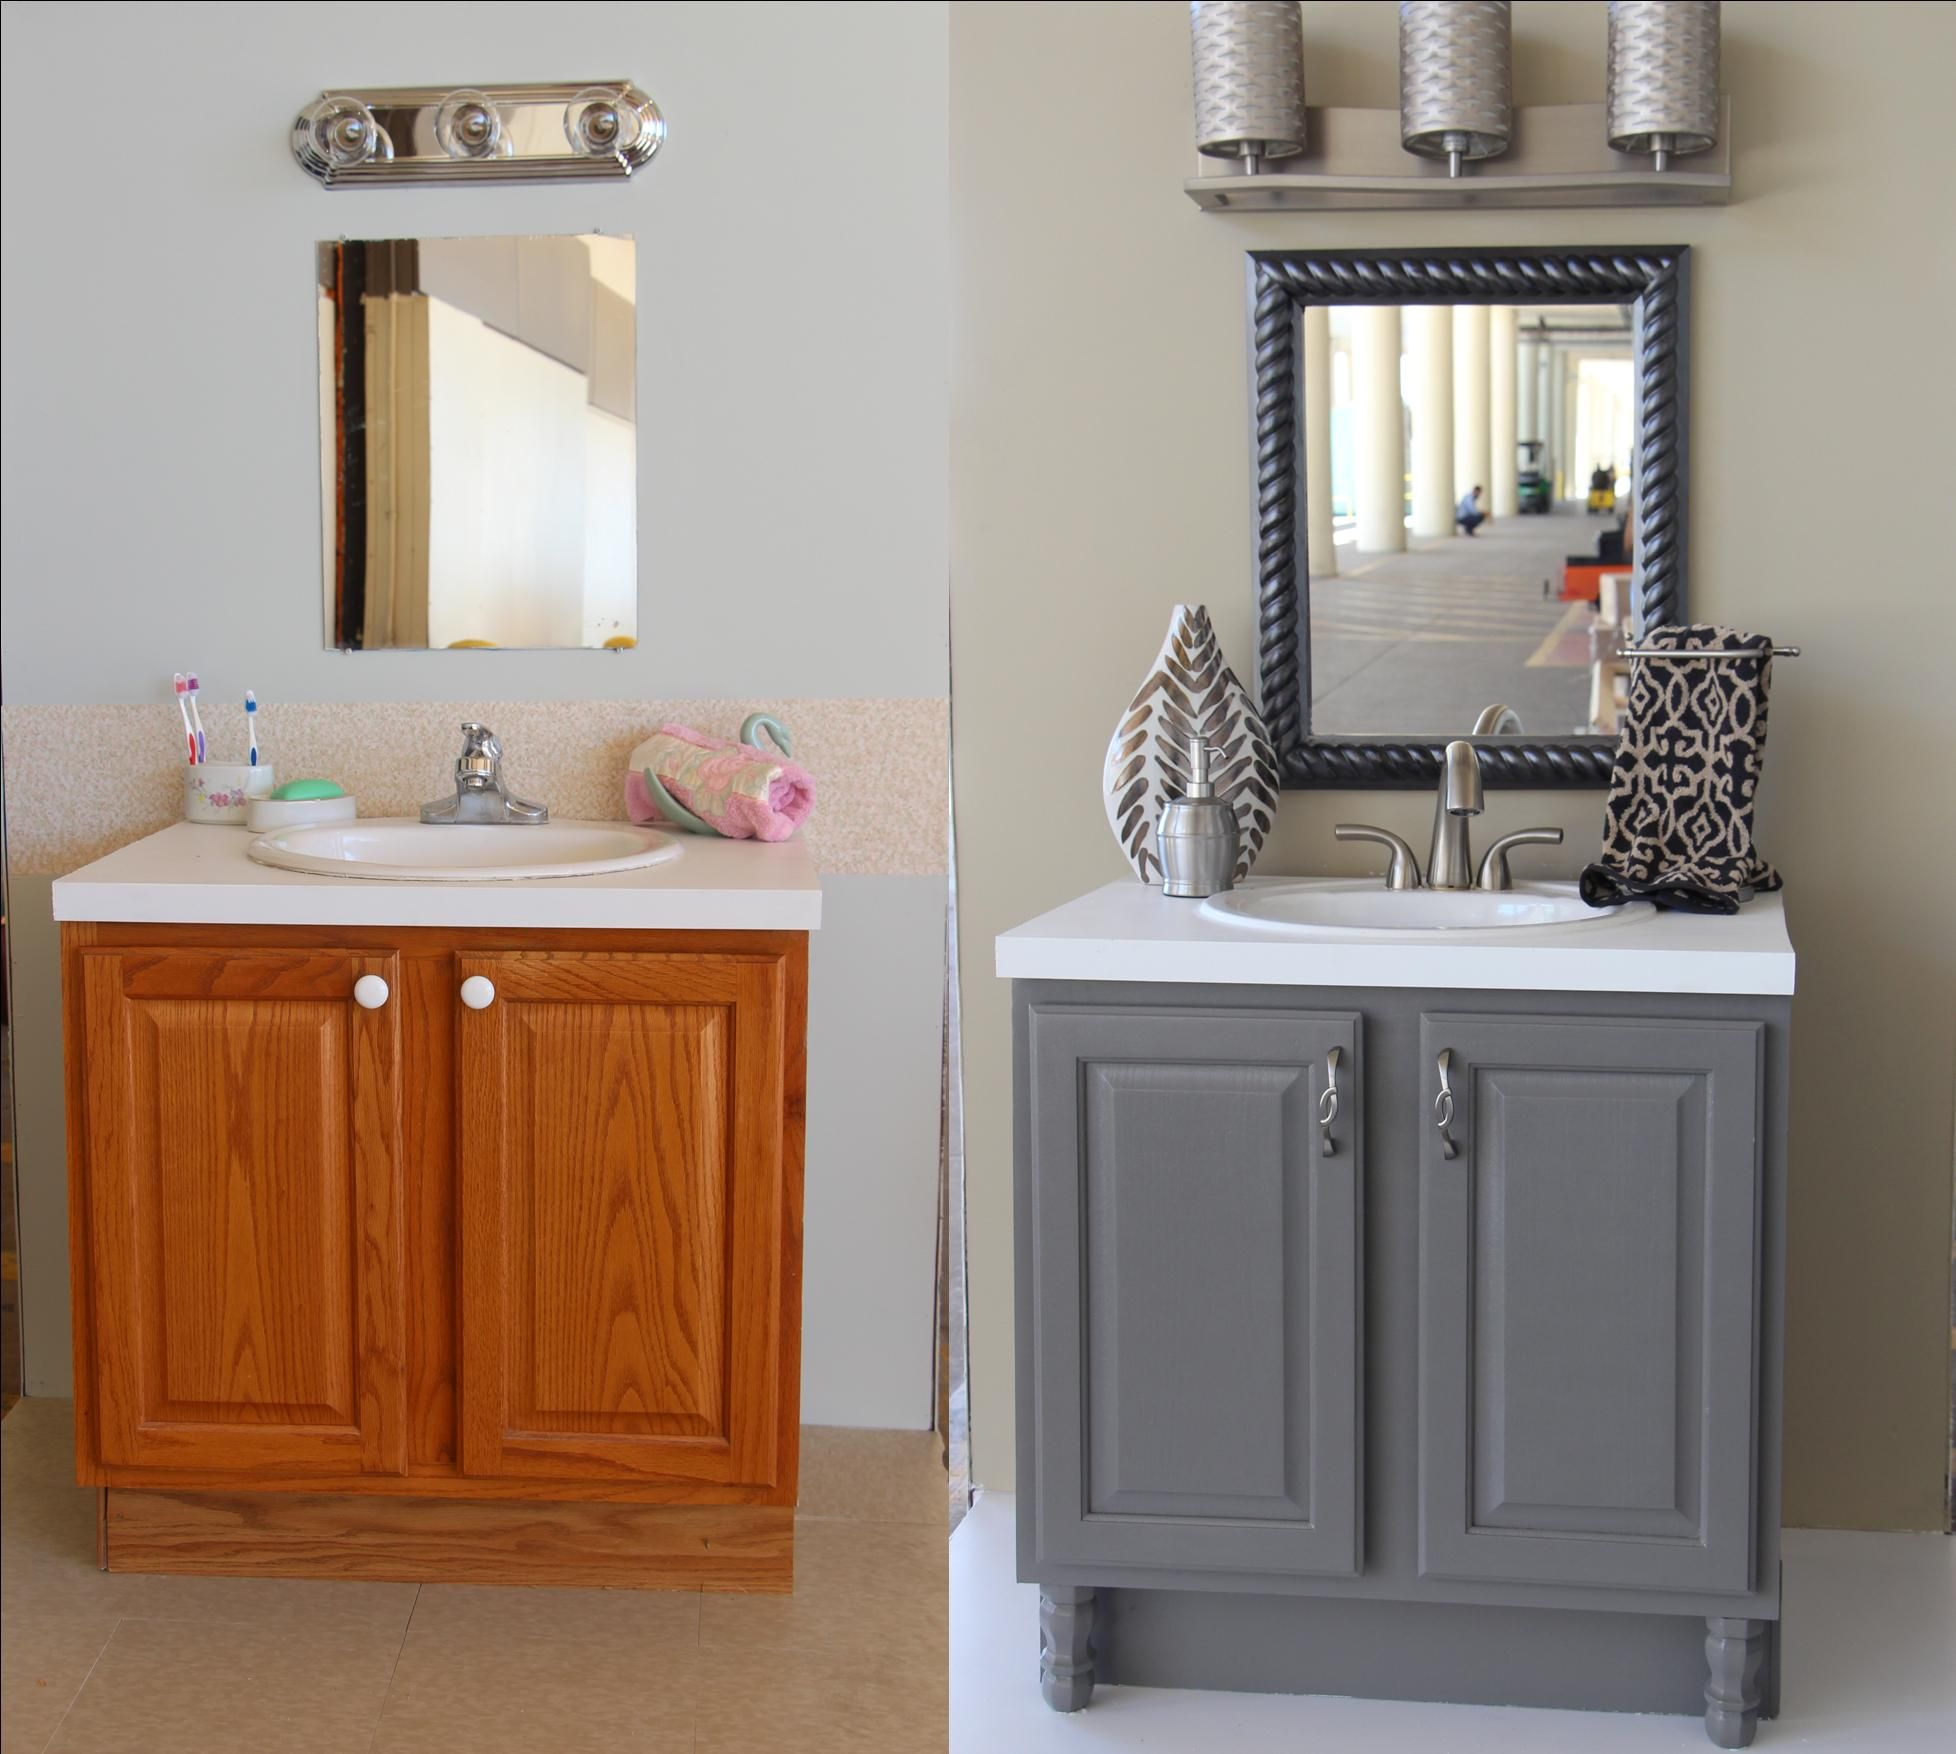 bath cabinets trendsetter bath before and after with accessories-upcycled bathroom ideas UJORSOX